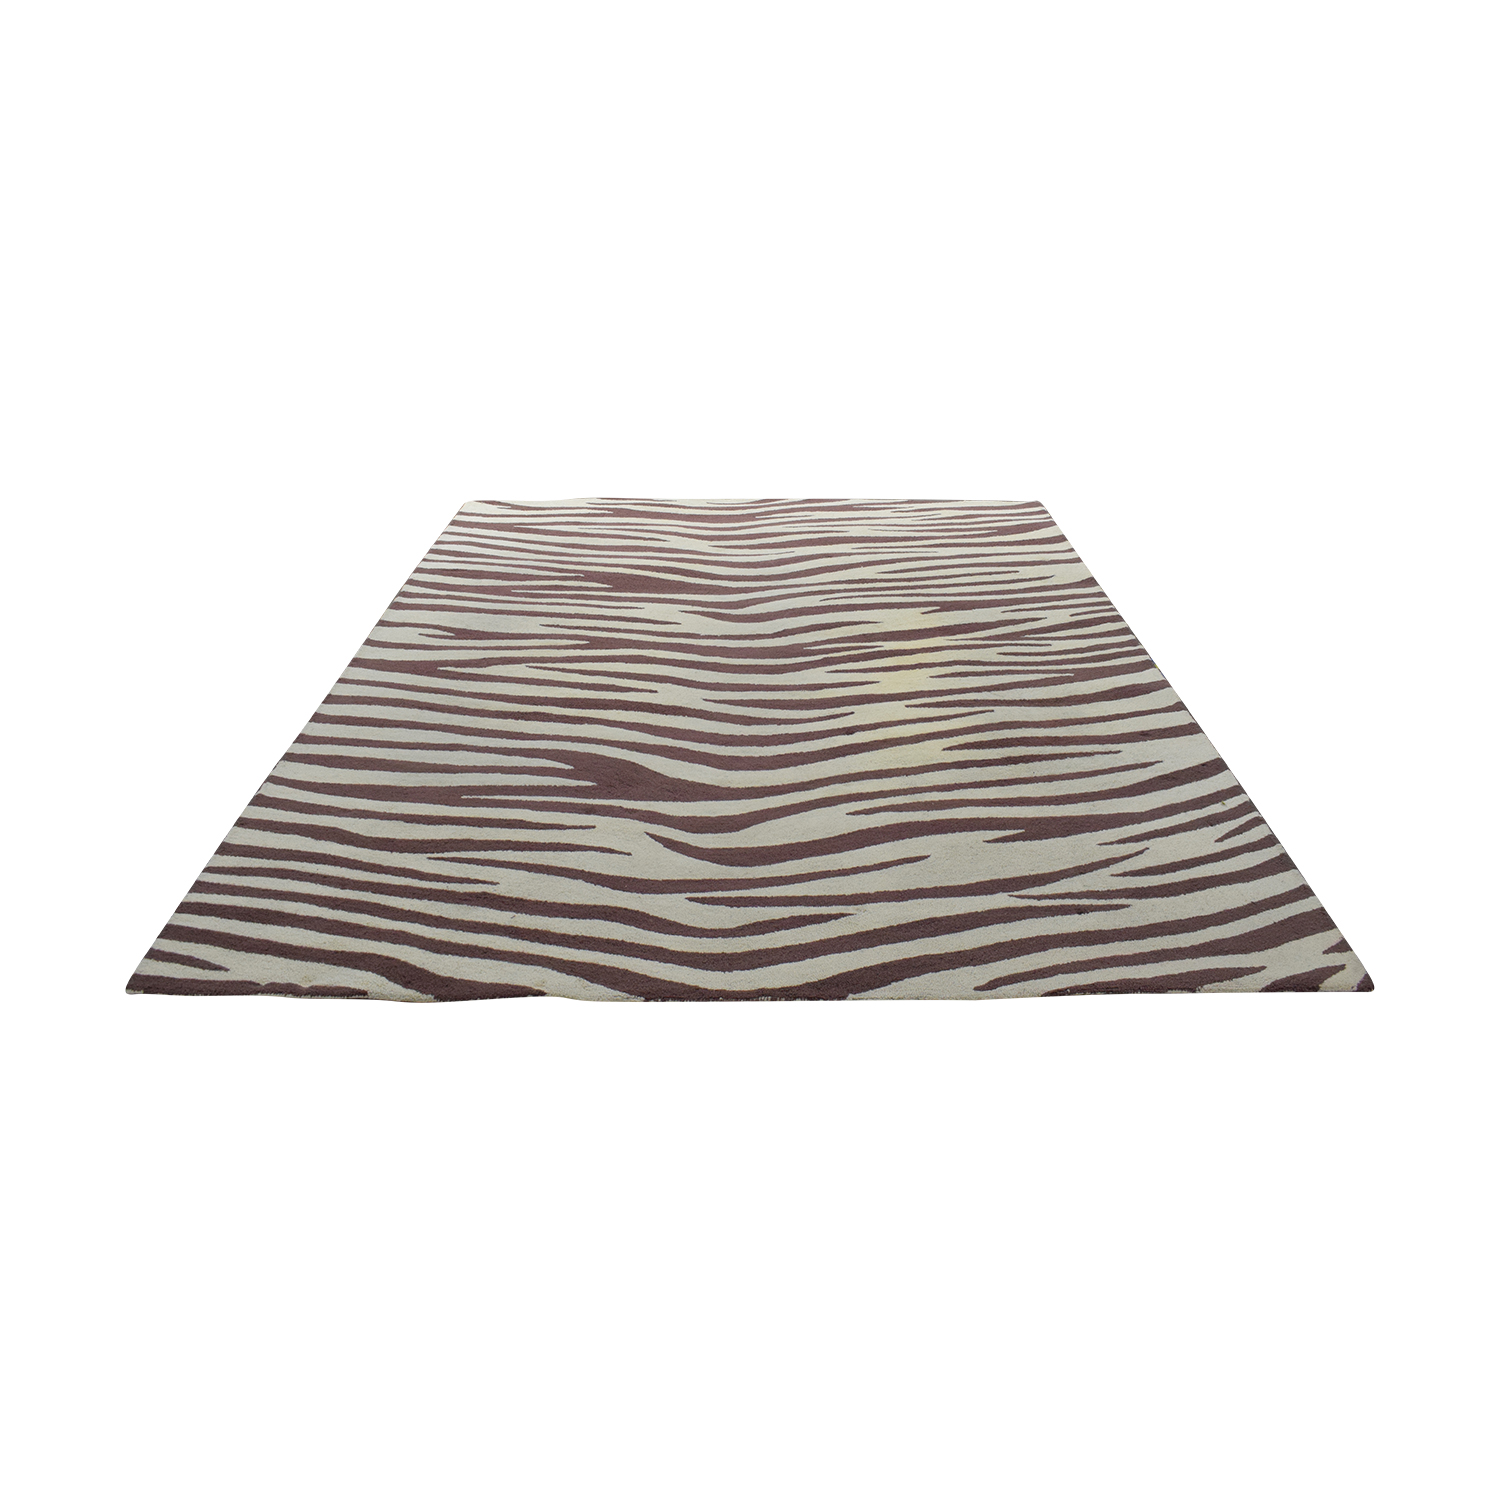 Pottery Barn Teen Pottery Barn Teen Zebra Pattern Rug